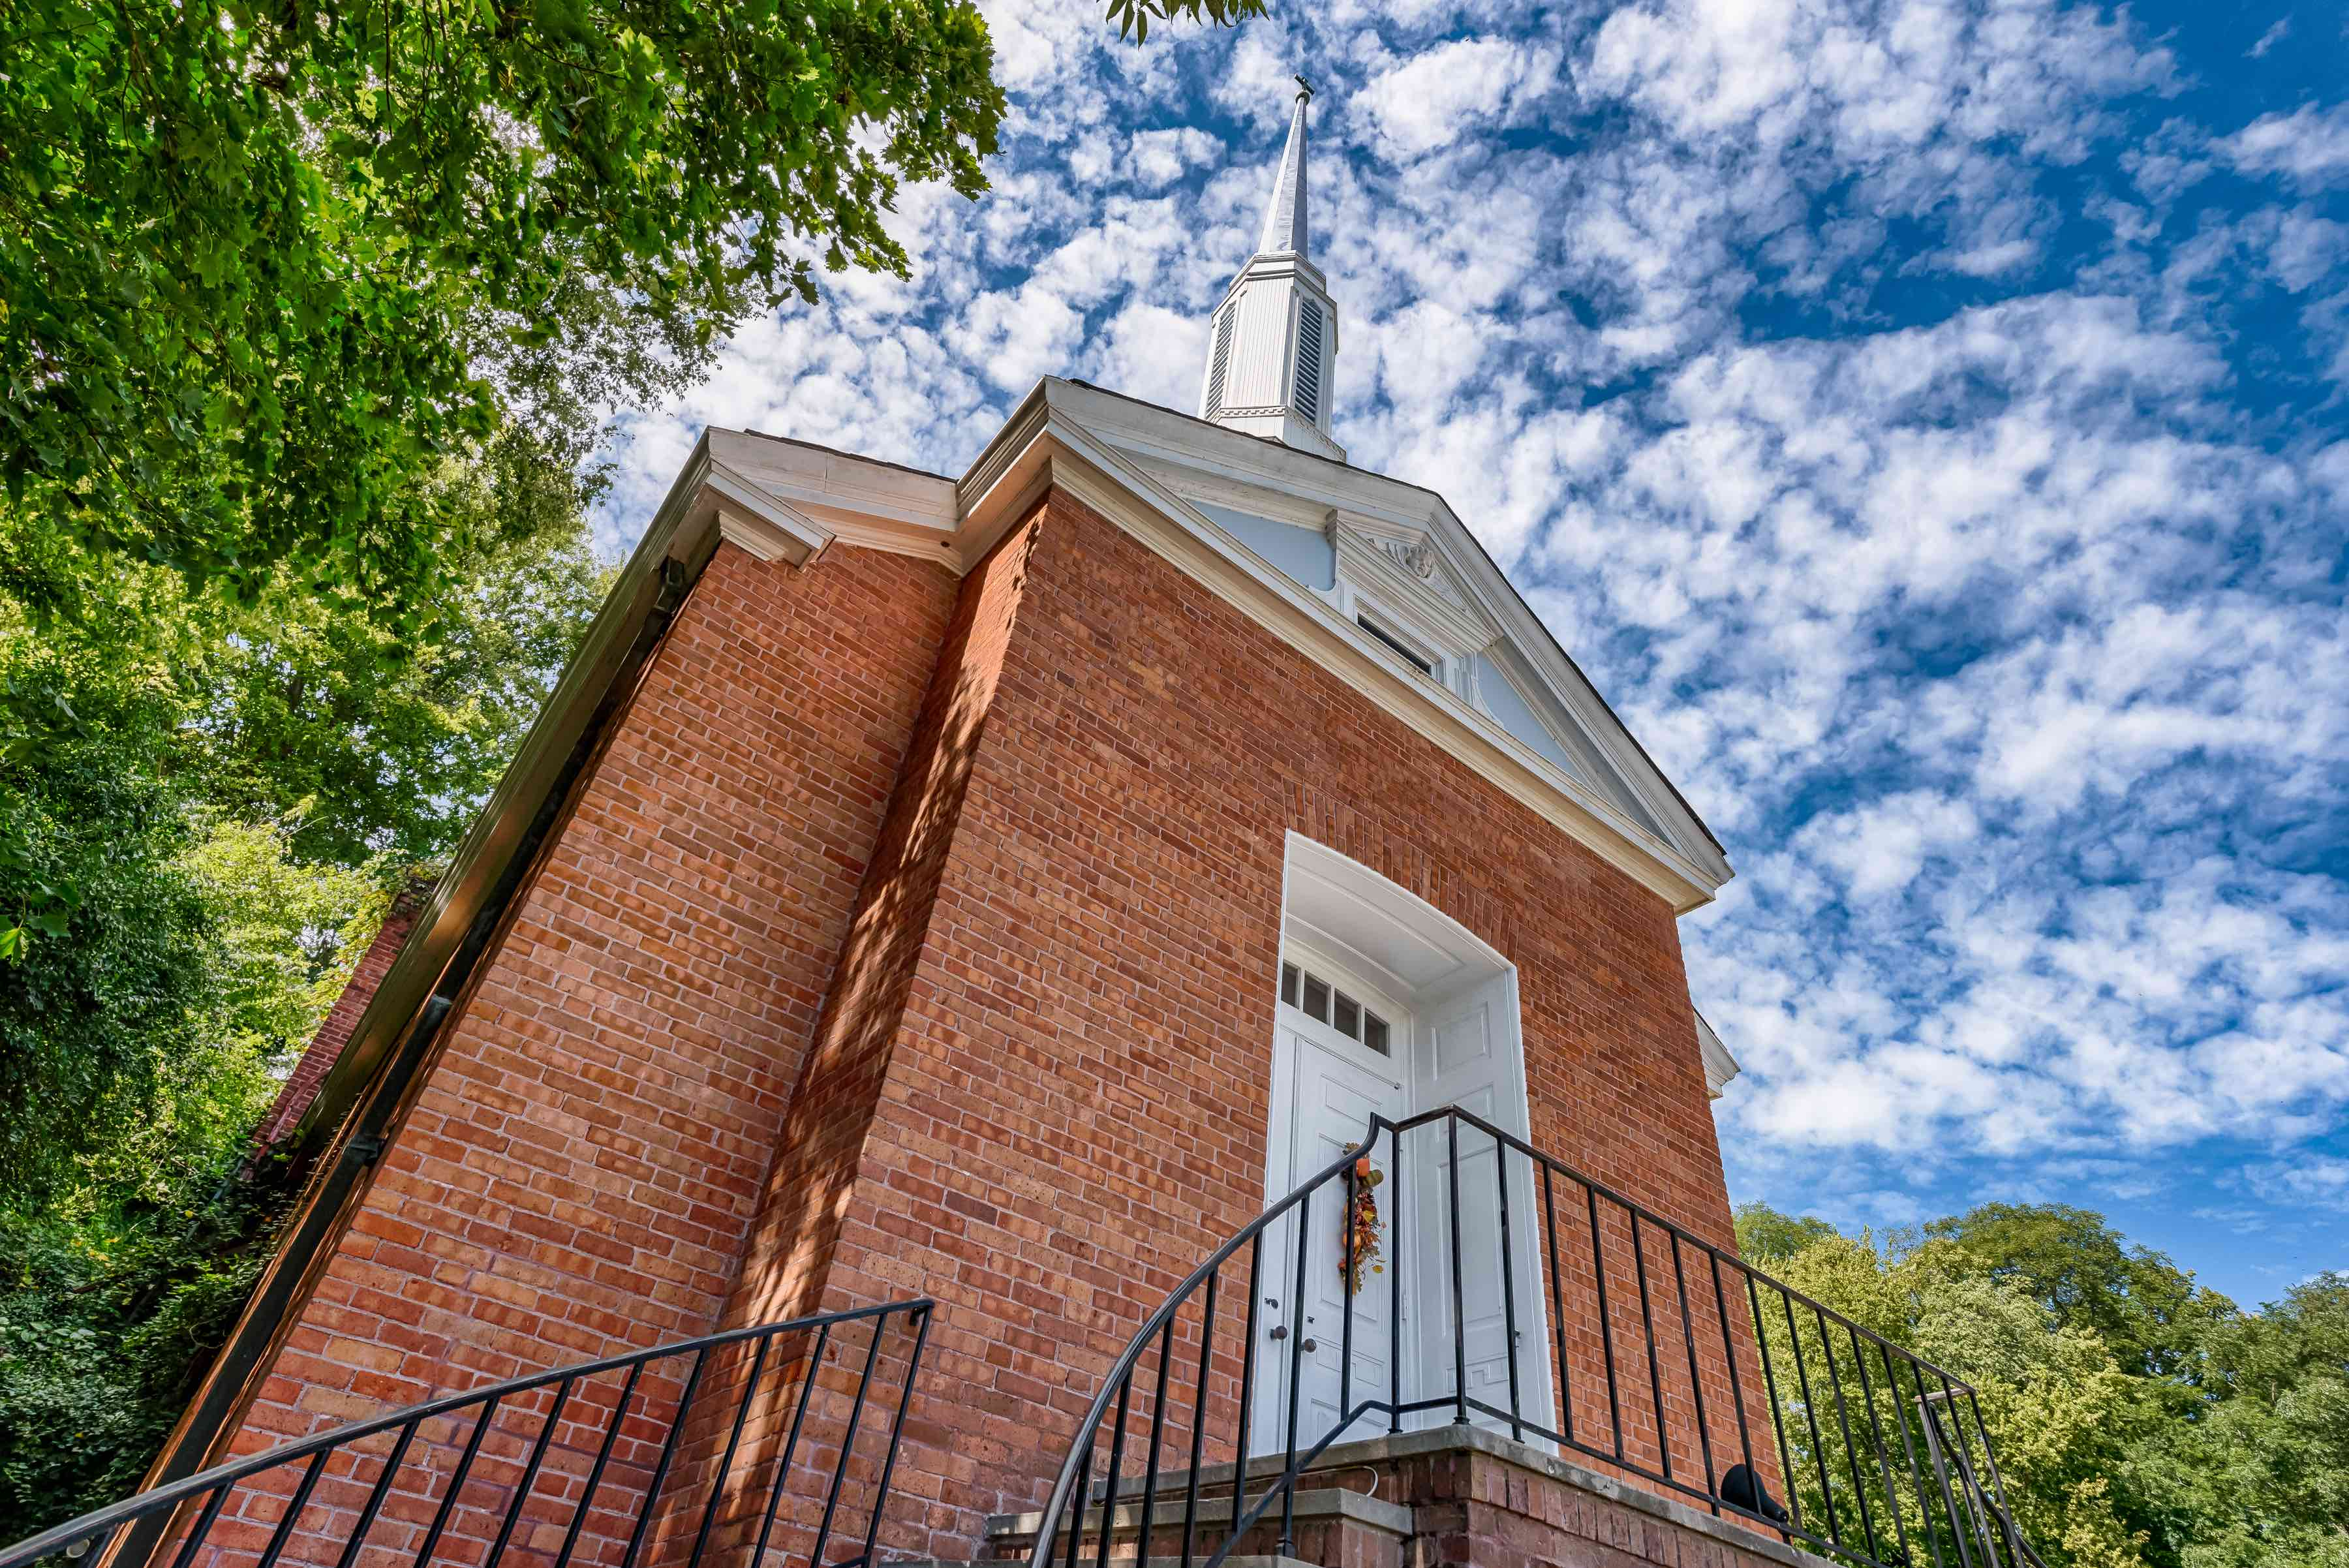 Photographs of a church converted into a residence in Clarksville, Missouri for Dielmann Sotheby's International Realty agent Ted Wight